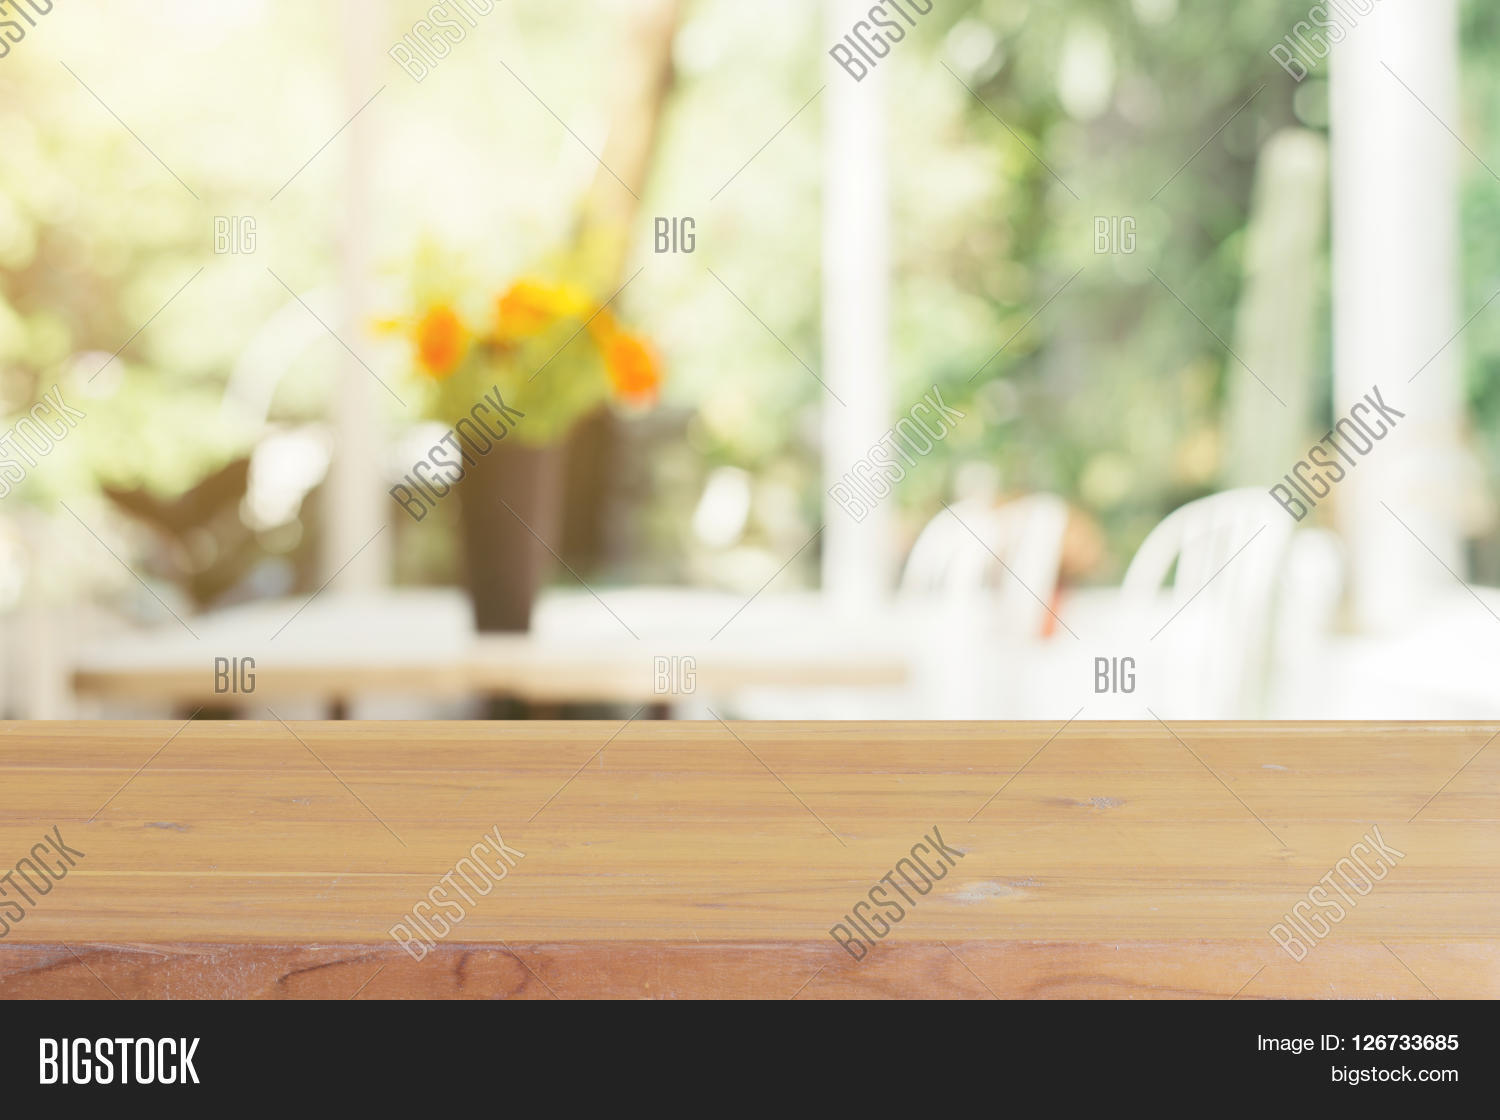 Empty wood table and blurred living room background stock photo - Wooden Board Empty Table Blurred Background Perspective Brown Wood Over Blur Flower Vase In Coffee